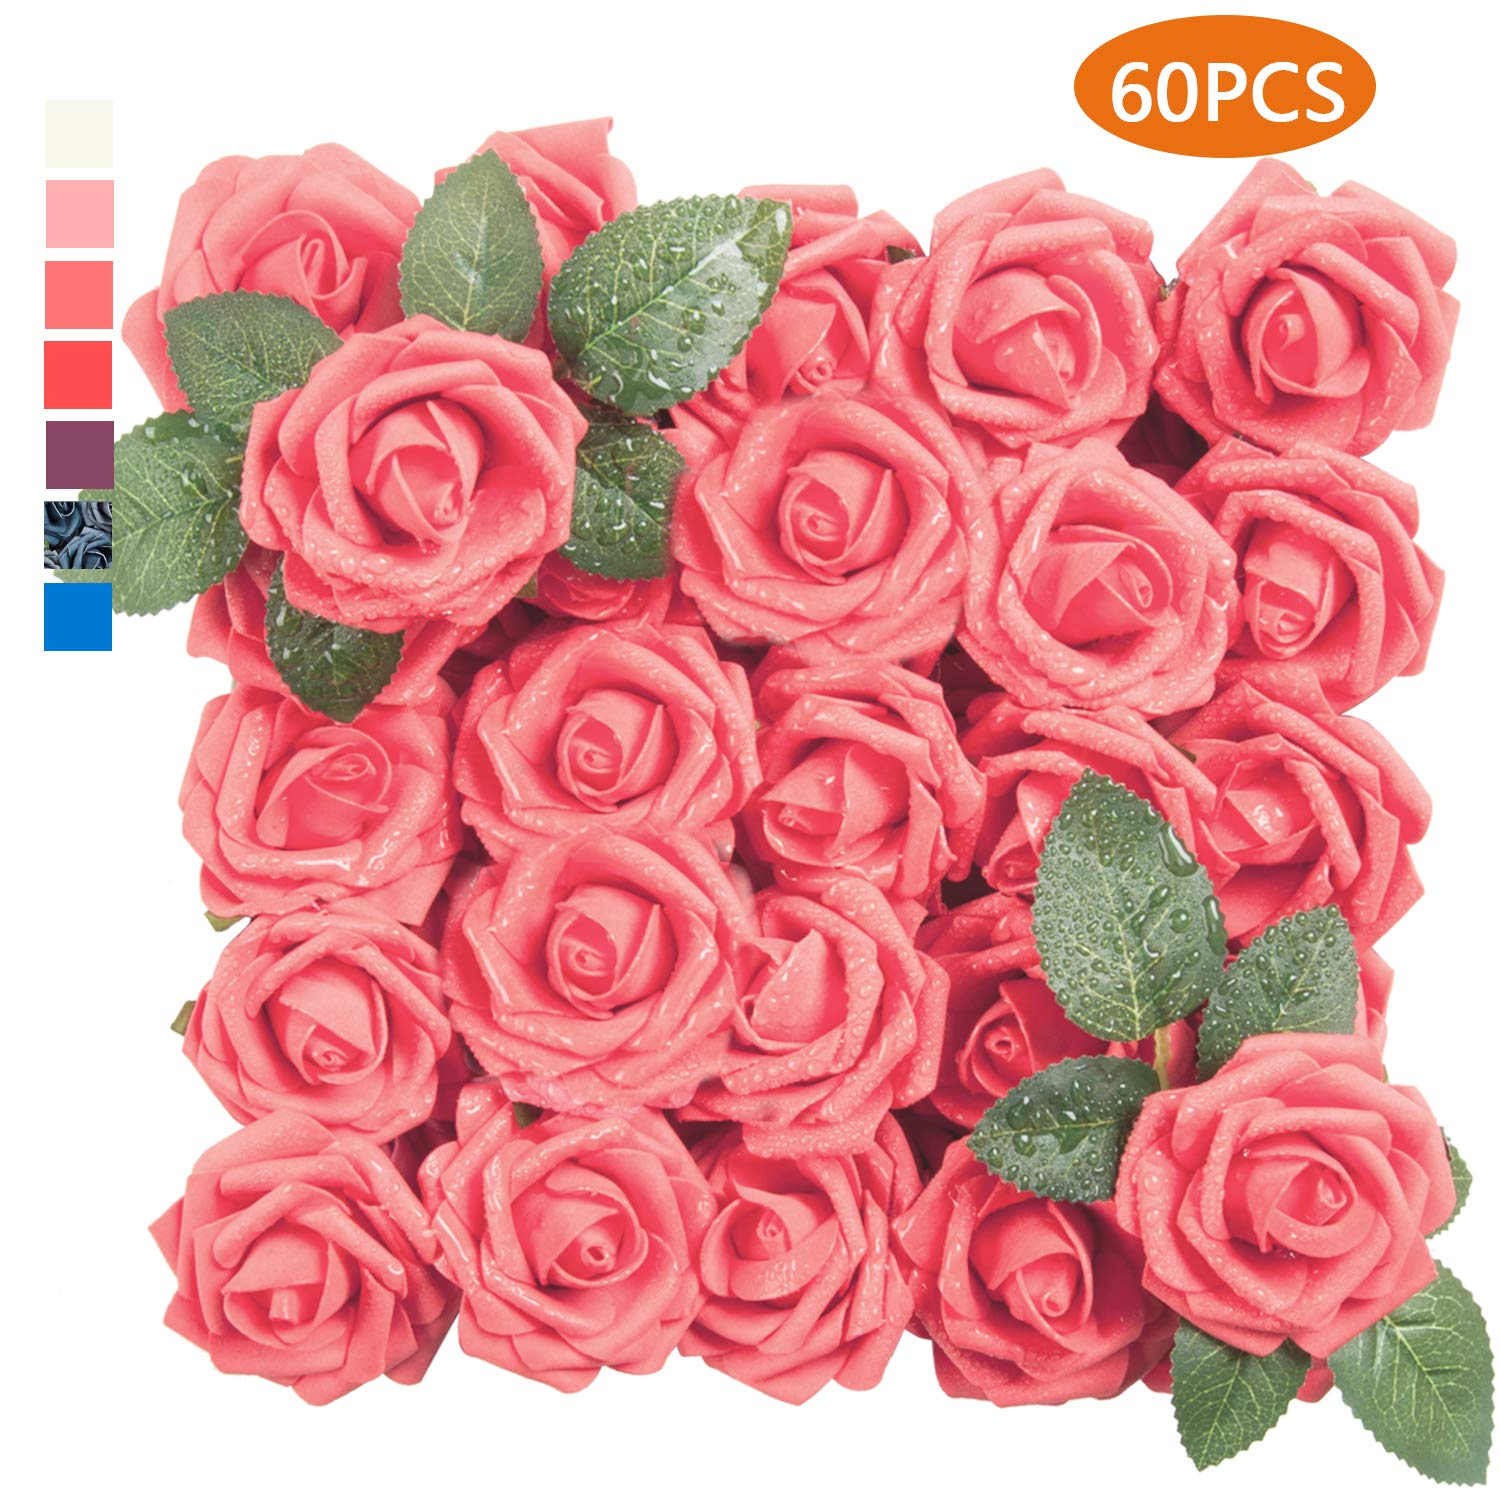 Tophouse 60pcs Artificial Flowers Roses Real Touch Fake Roses For Diy Wedding Bouquets Bridal Shower Party Home Decorations Red